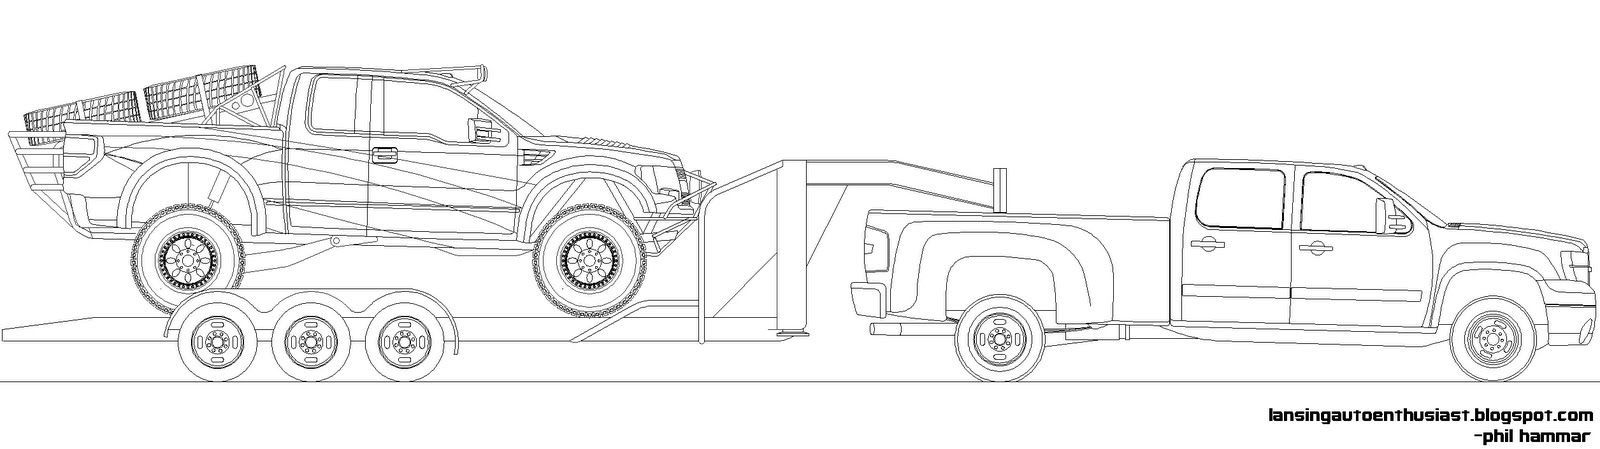 lifted truck coloring pages lifted truck coloring pages coloring lifted pages truck